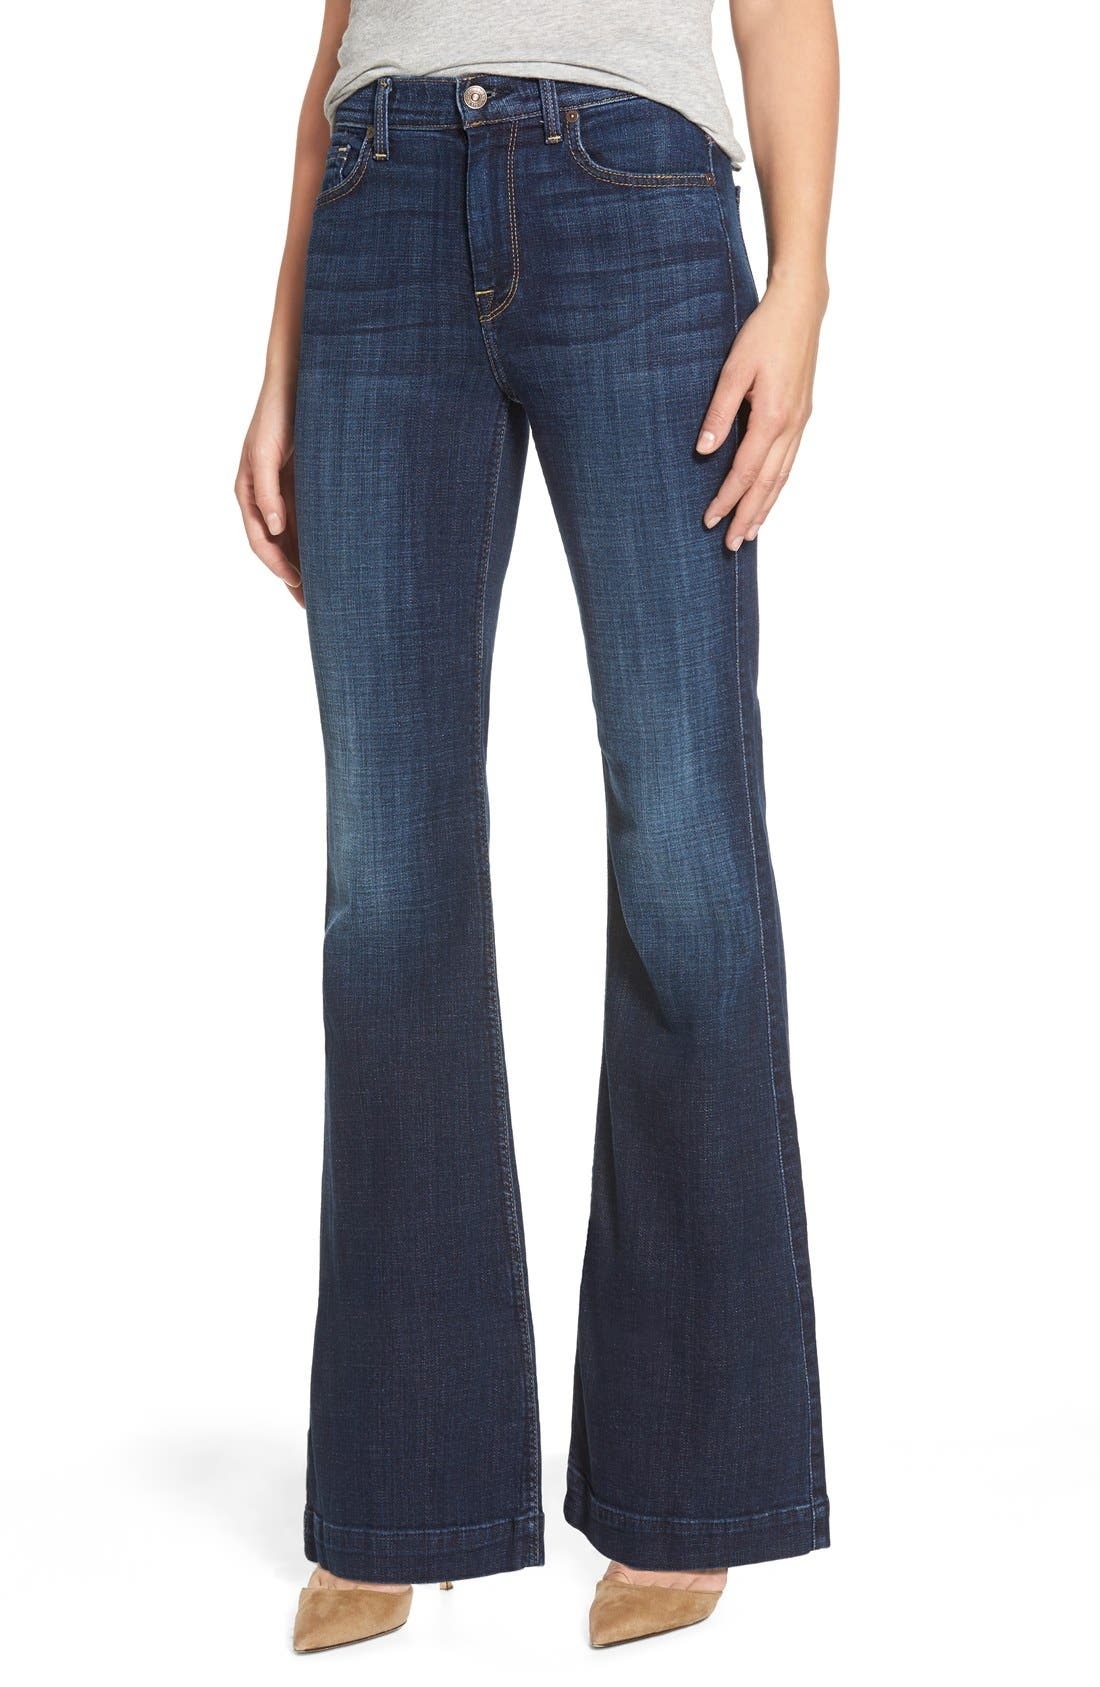 Main Image - 7 For All Mankind® 'Tailorless Ginger' High Rise Flare Jeans (Royal Broken Twill) (Short)